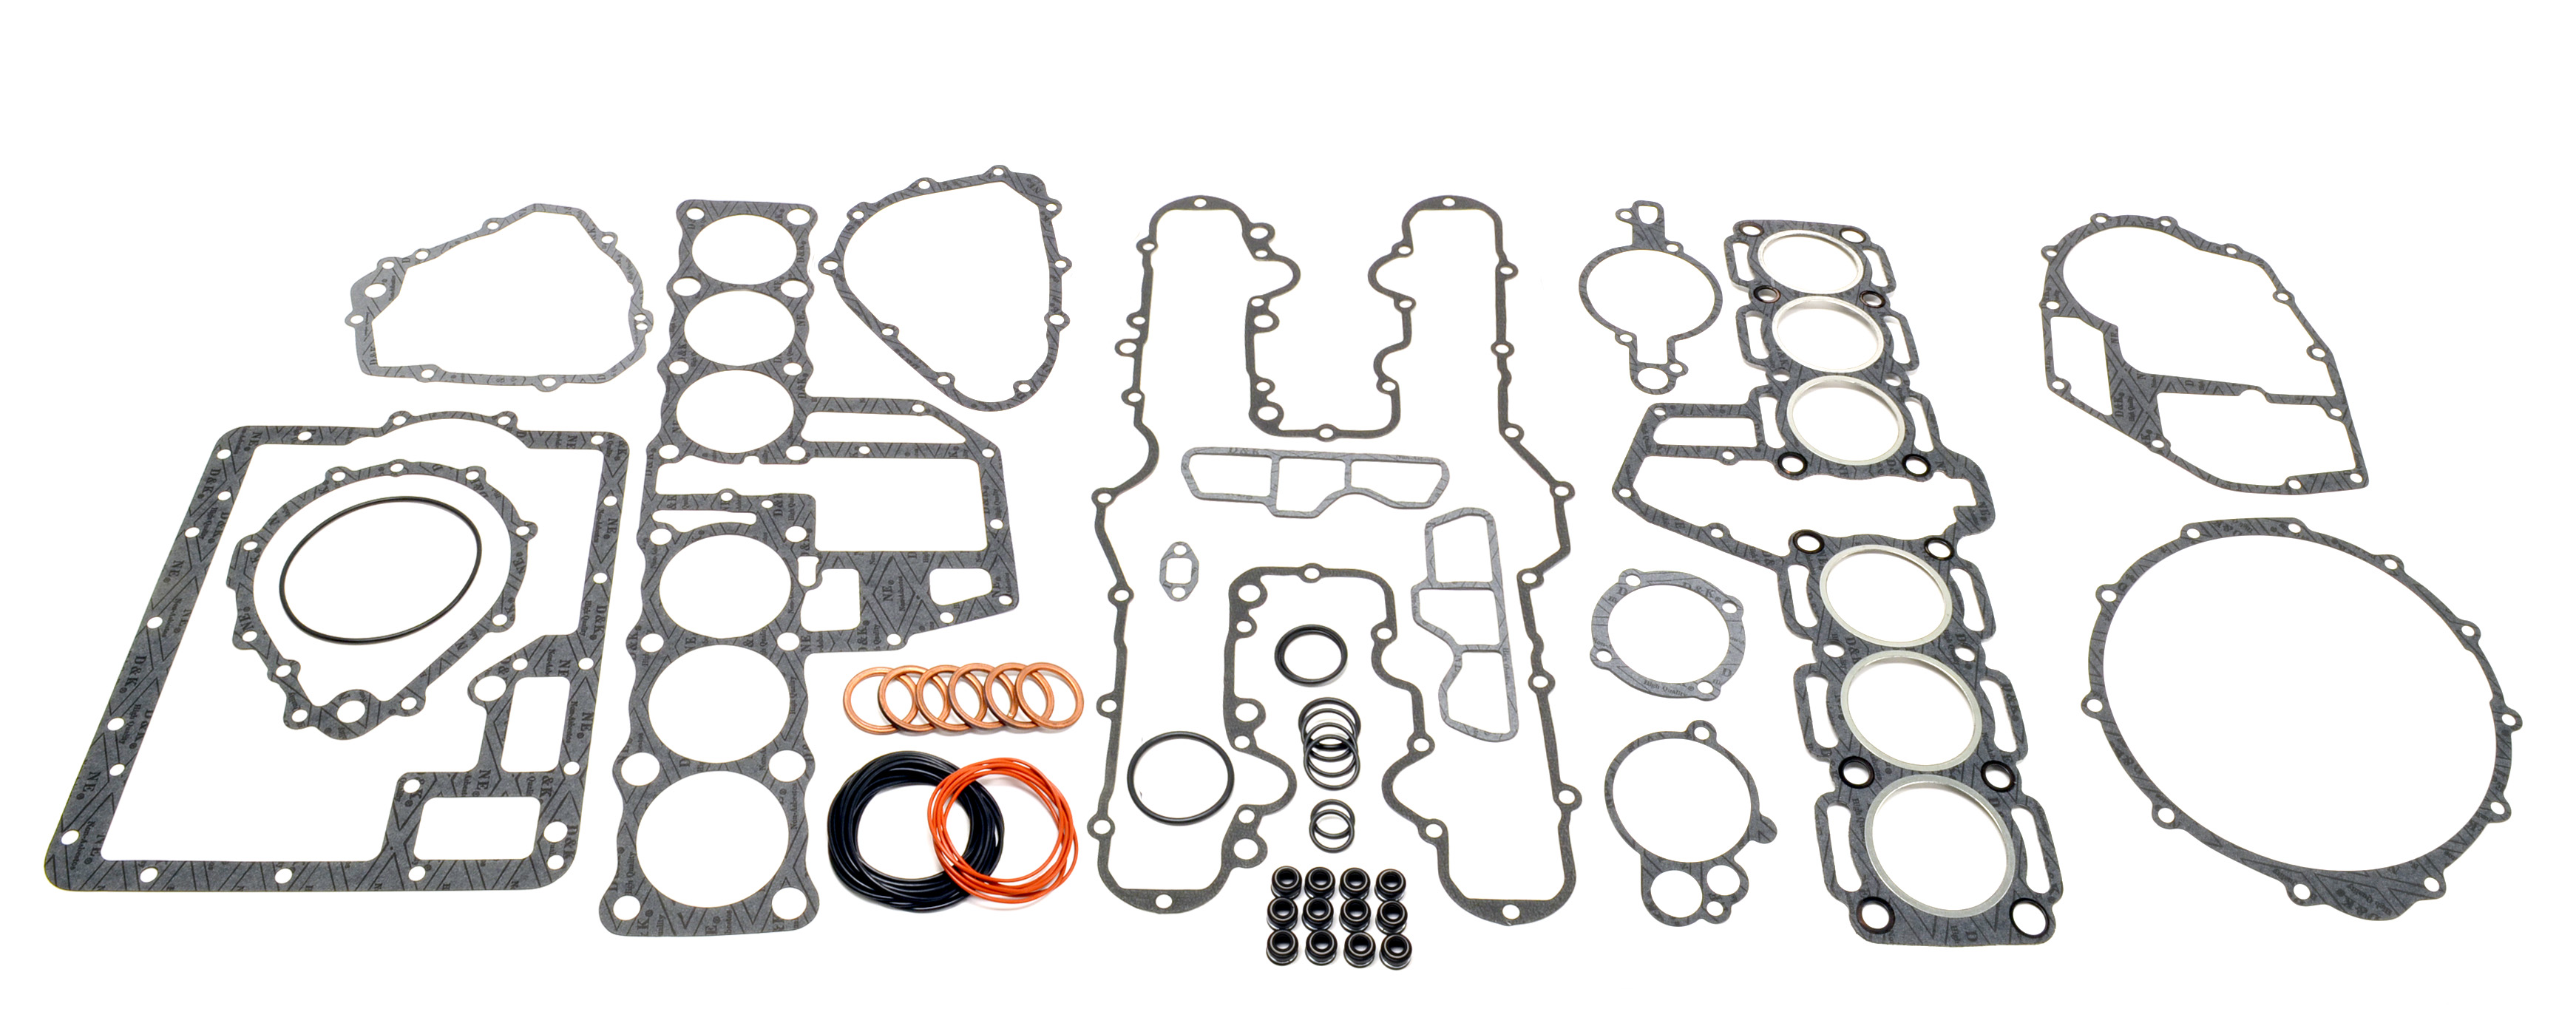 kawasaki kz1300 top bottom end complete engine gasket set kit